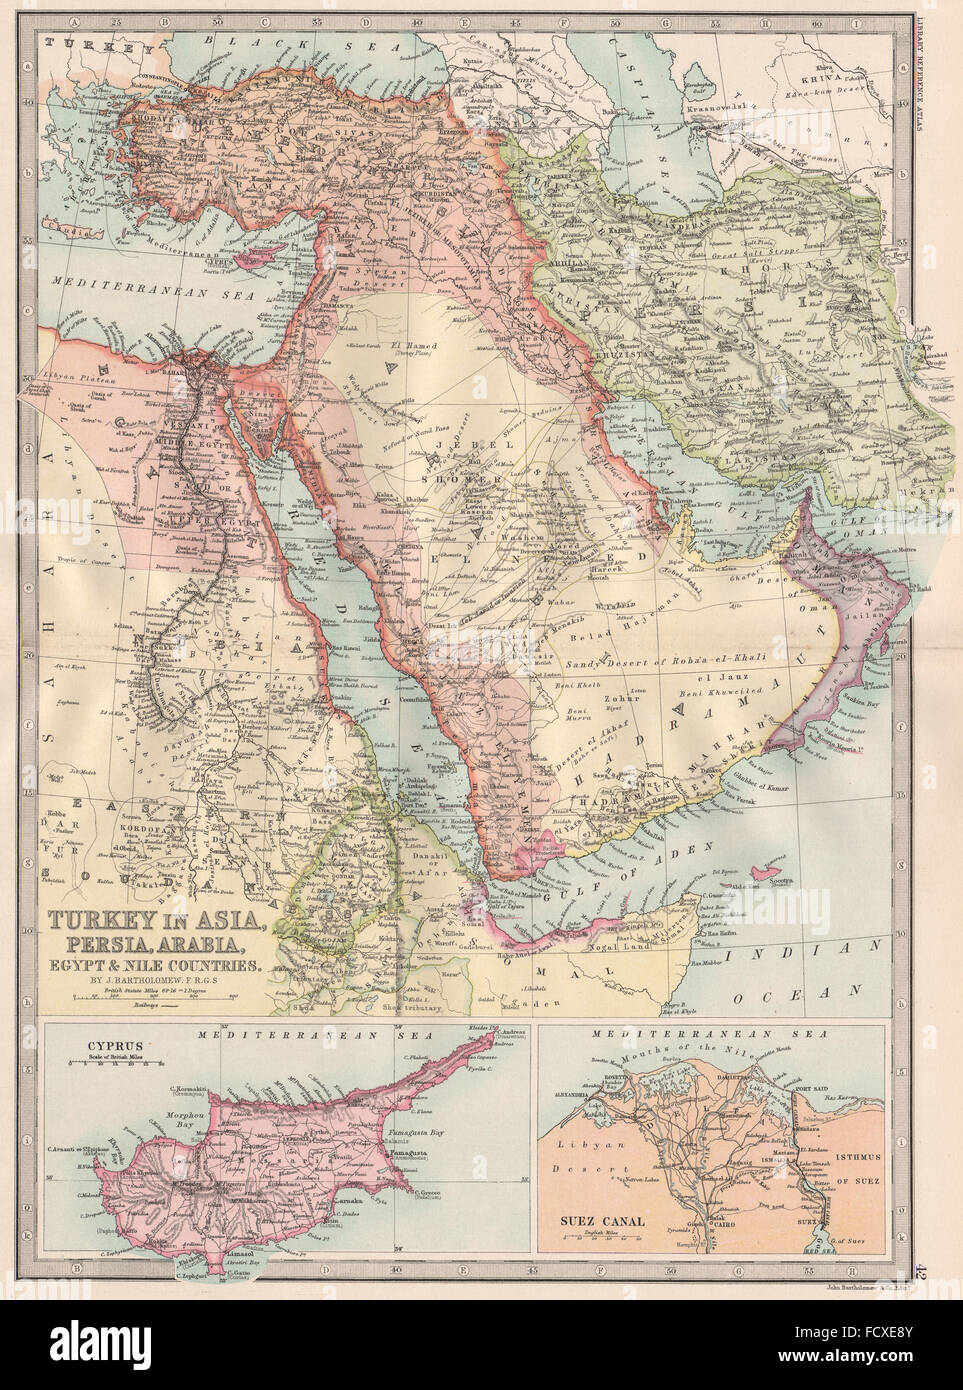 Middle east turkey asia persia iran arabia egypt cyprus suez middle east turkey asia persia iran arabia egypt cyprus suez canal 1890 map gumiabroncs Choice Image